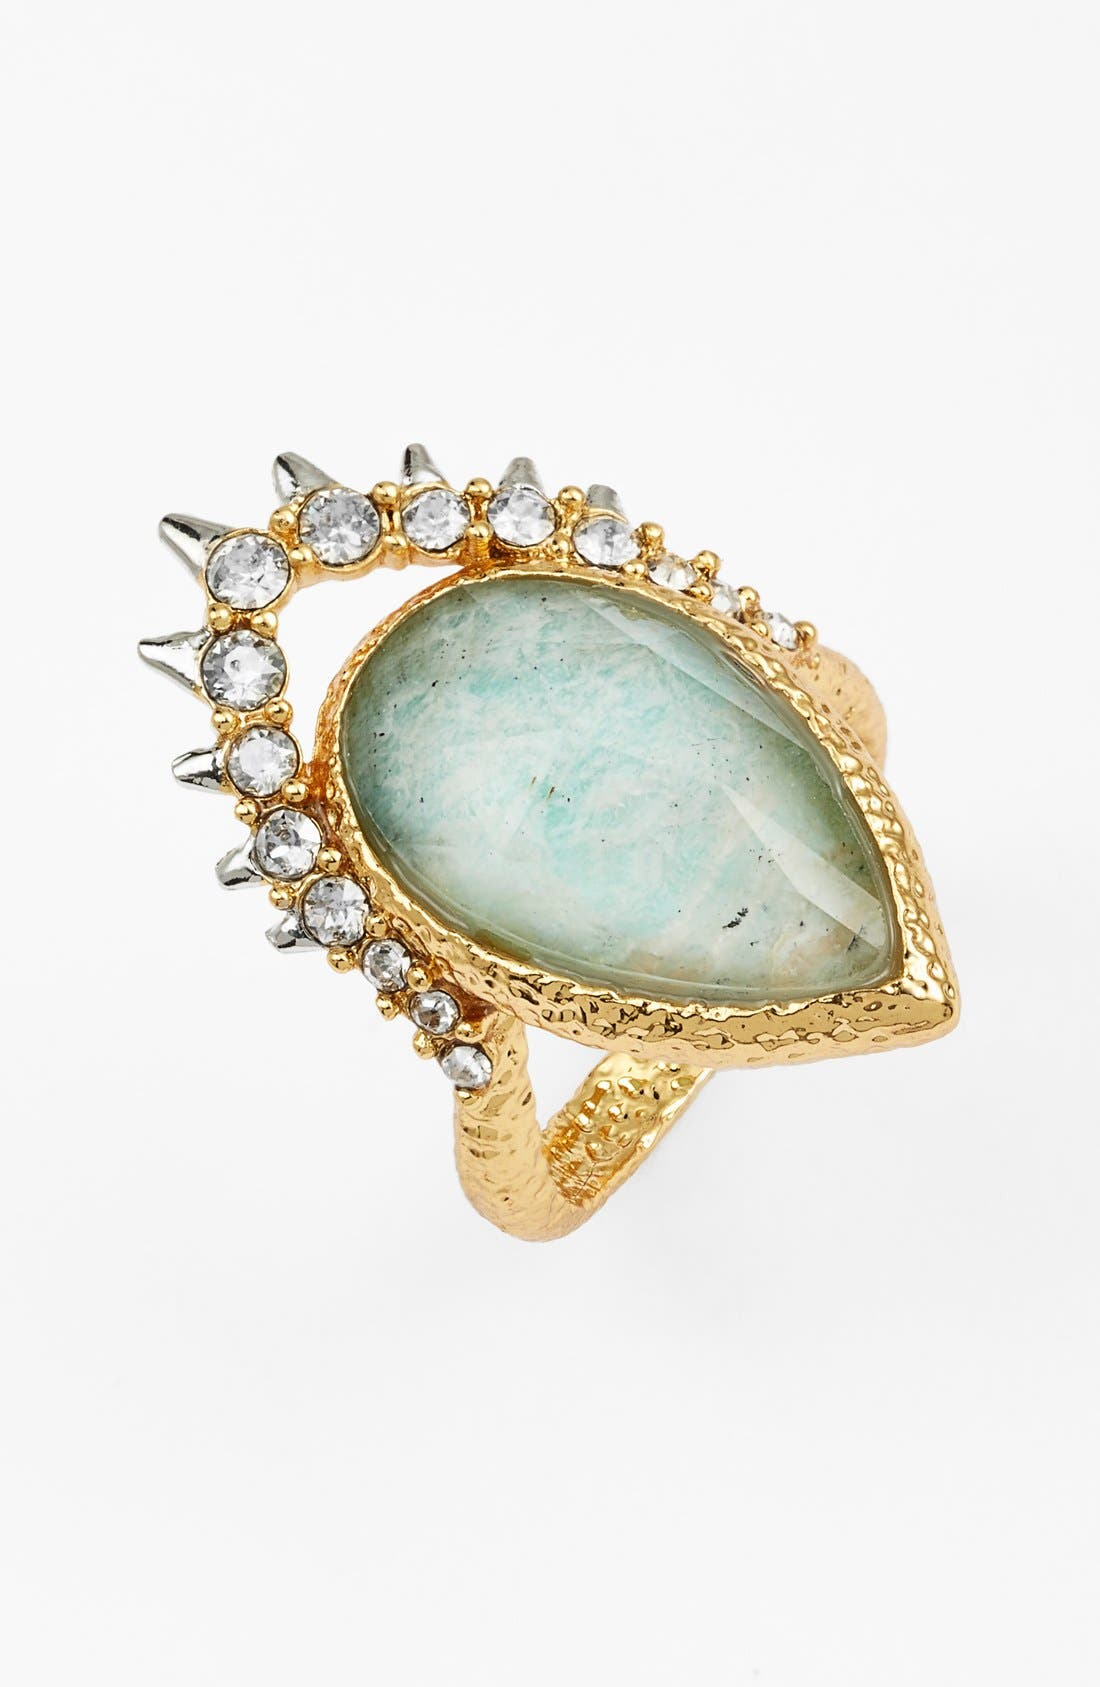 Main Image - Alexis Bittar 'Elements - Muse d'Or' Doublet Cocktail Ring